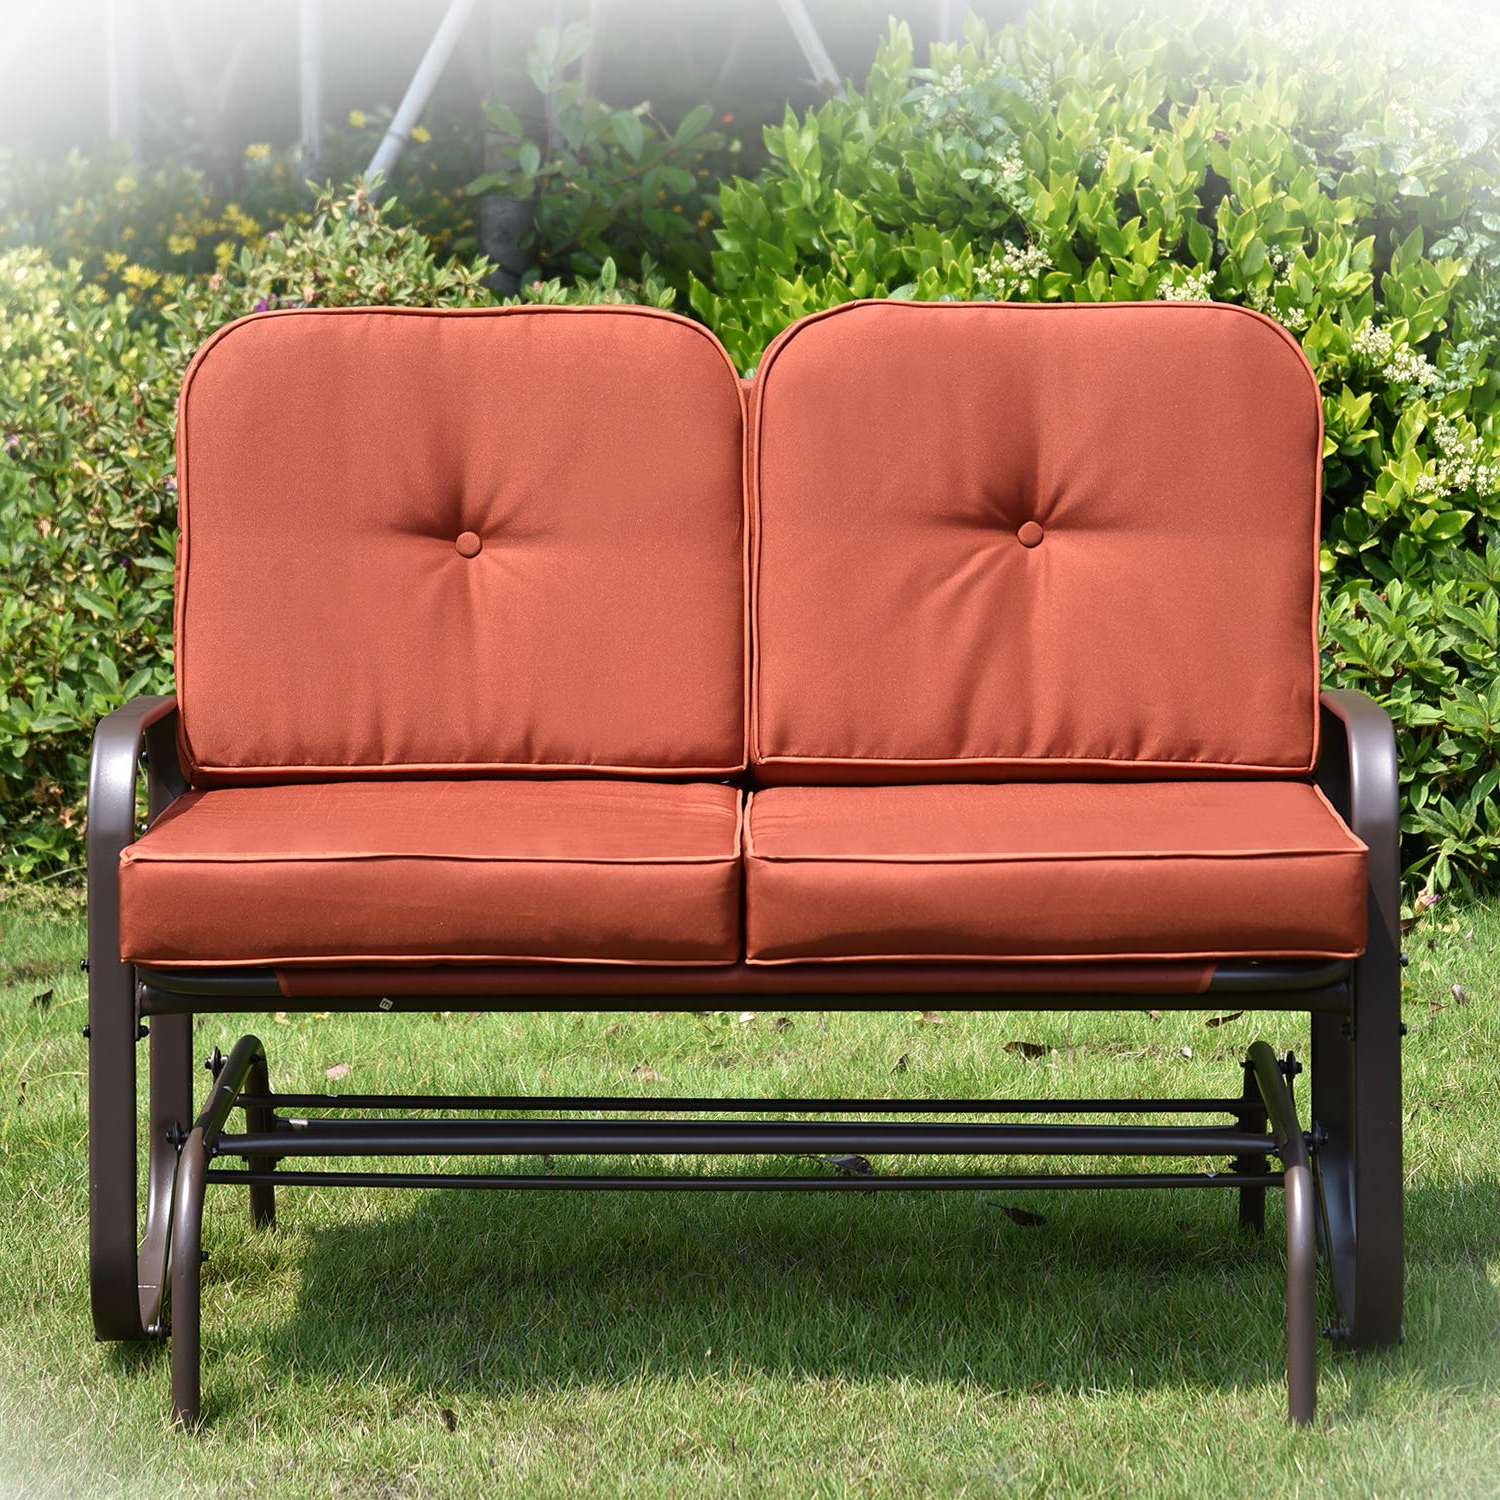 Popular Outdoor Loveseat Gliders With Cushion For Amazon: Broad Patio Glider Bench Loveseat With Removable (View 5 of 30)